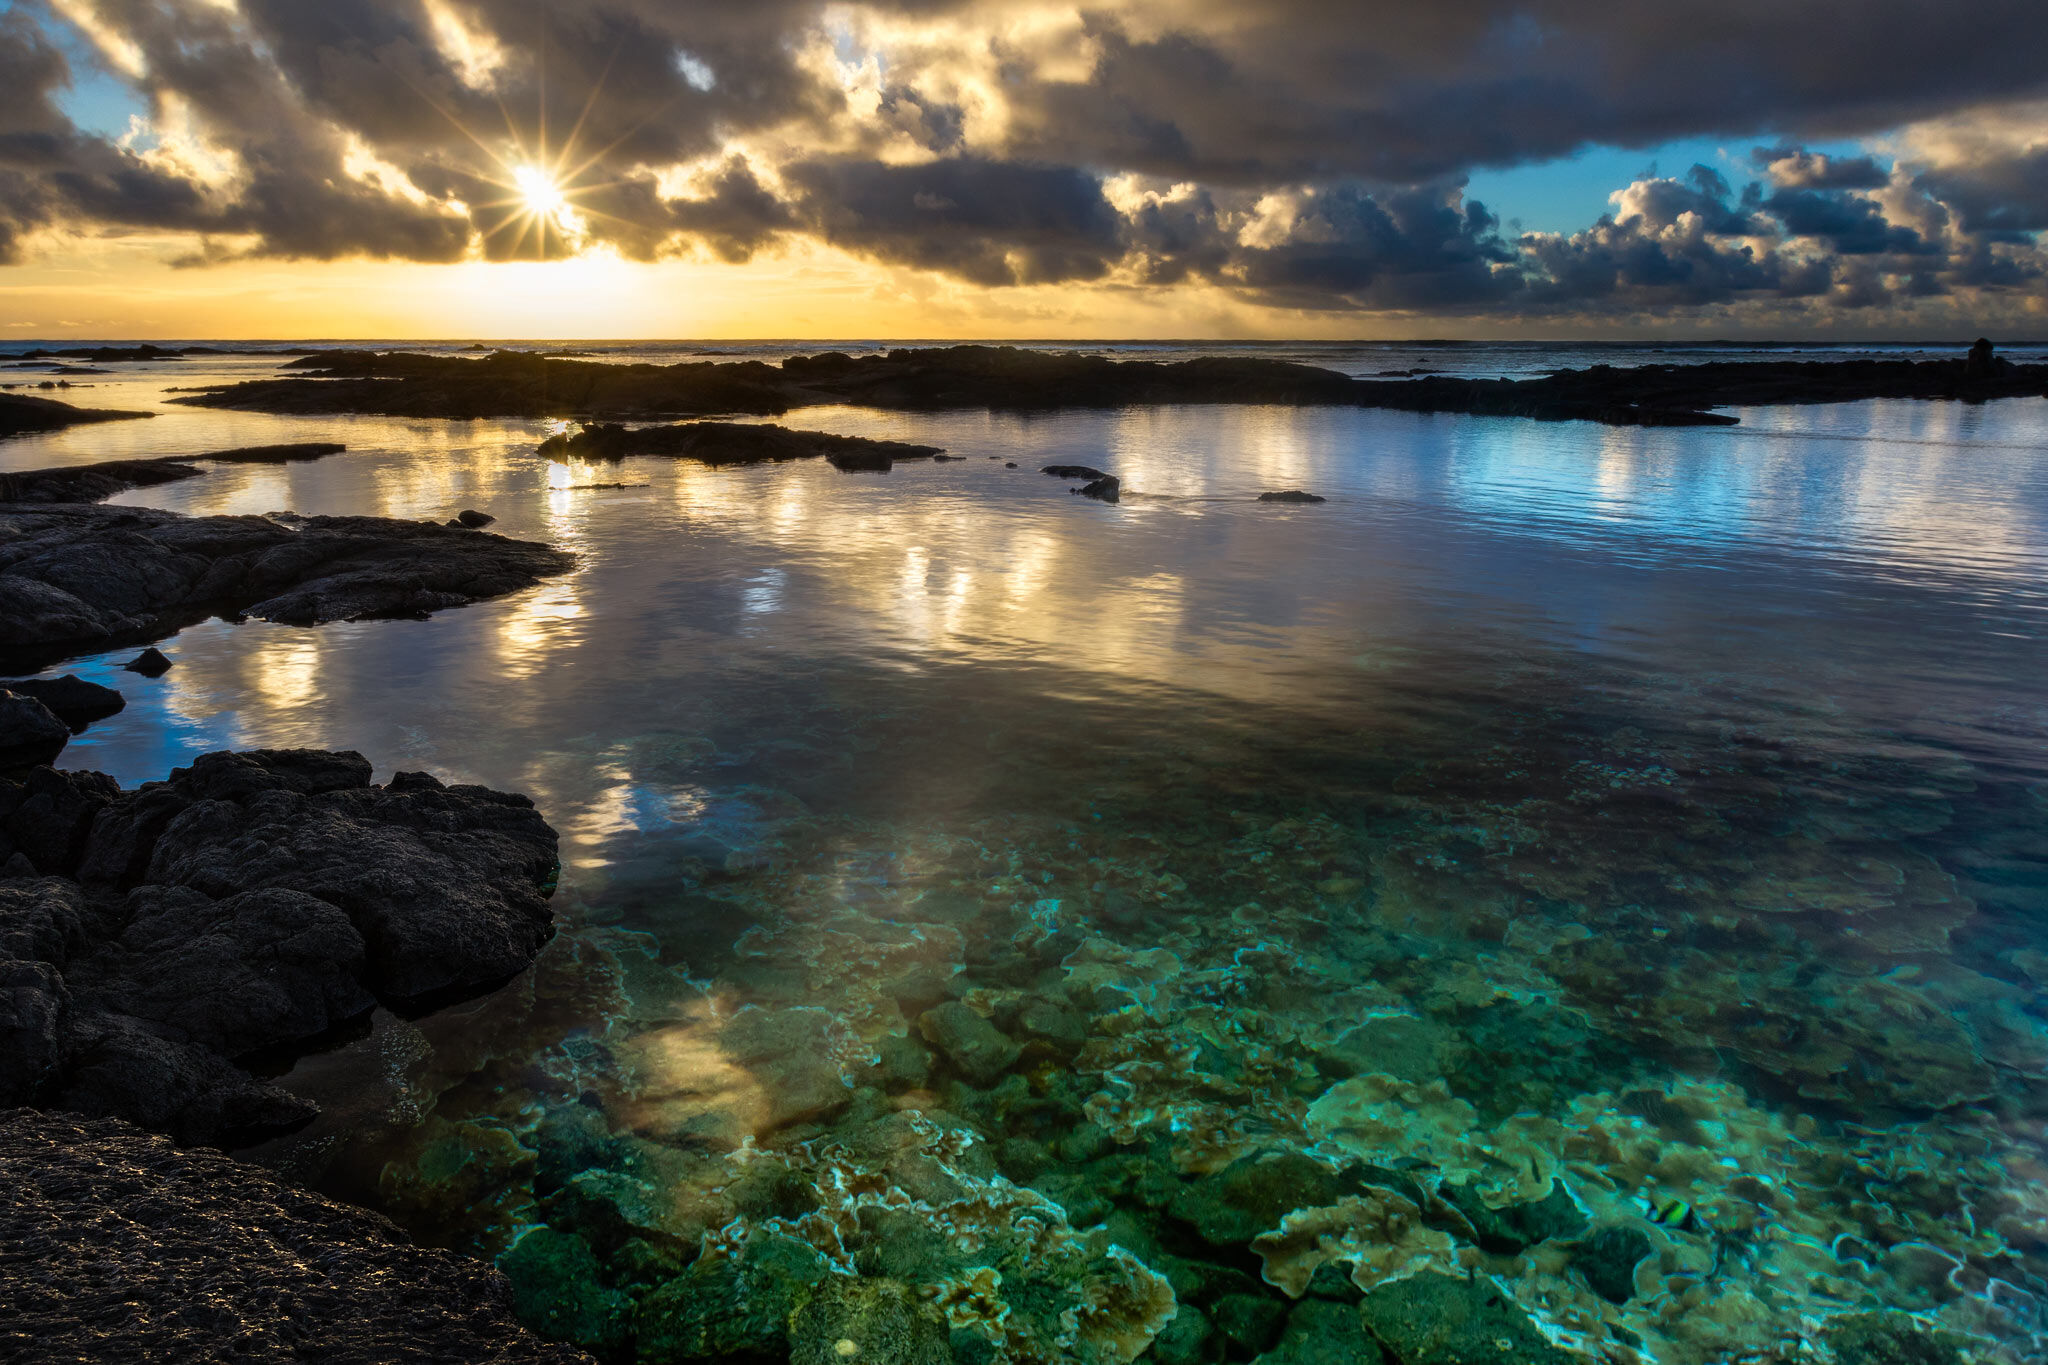 Kapoho Tide Pools was a little marine sanctuary located in the Puna District of the Big Island. It was known for its beautiful...